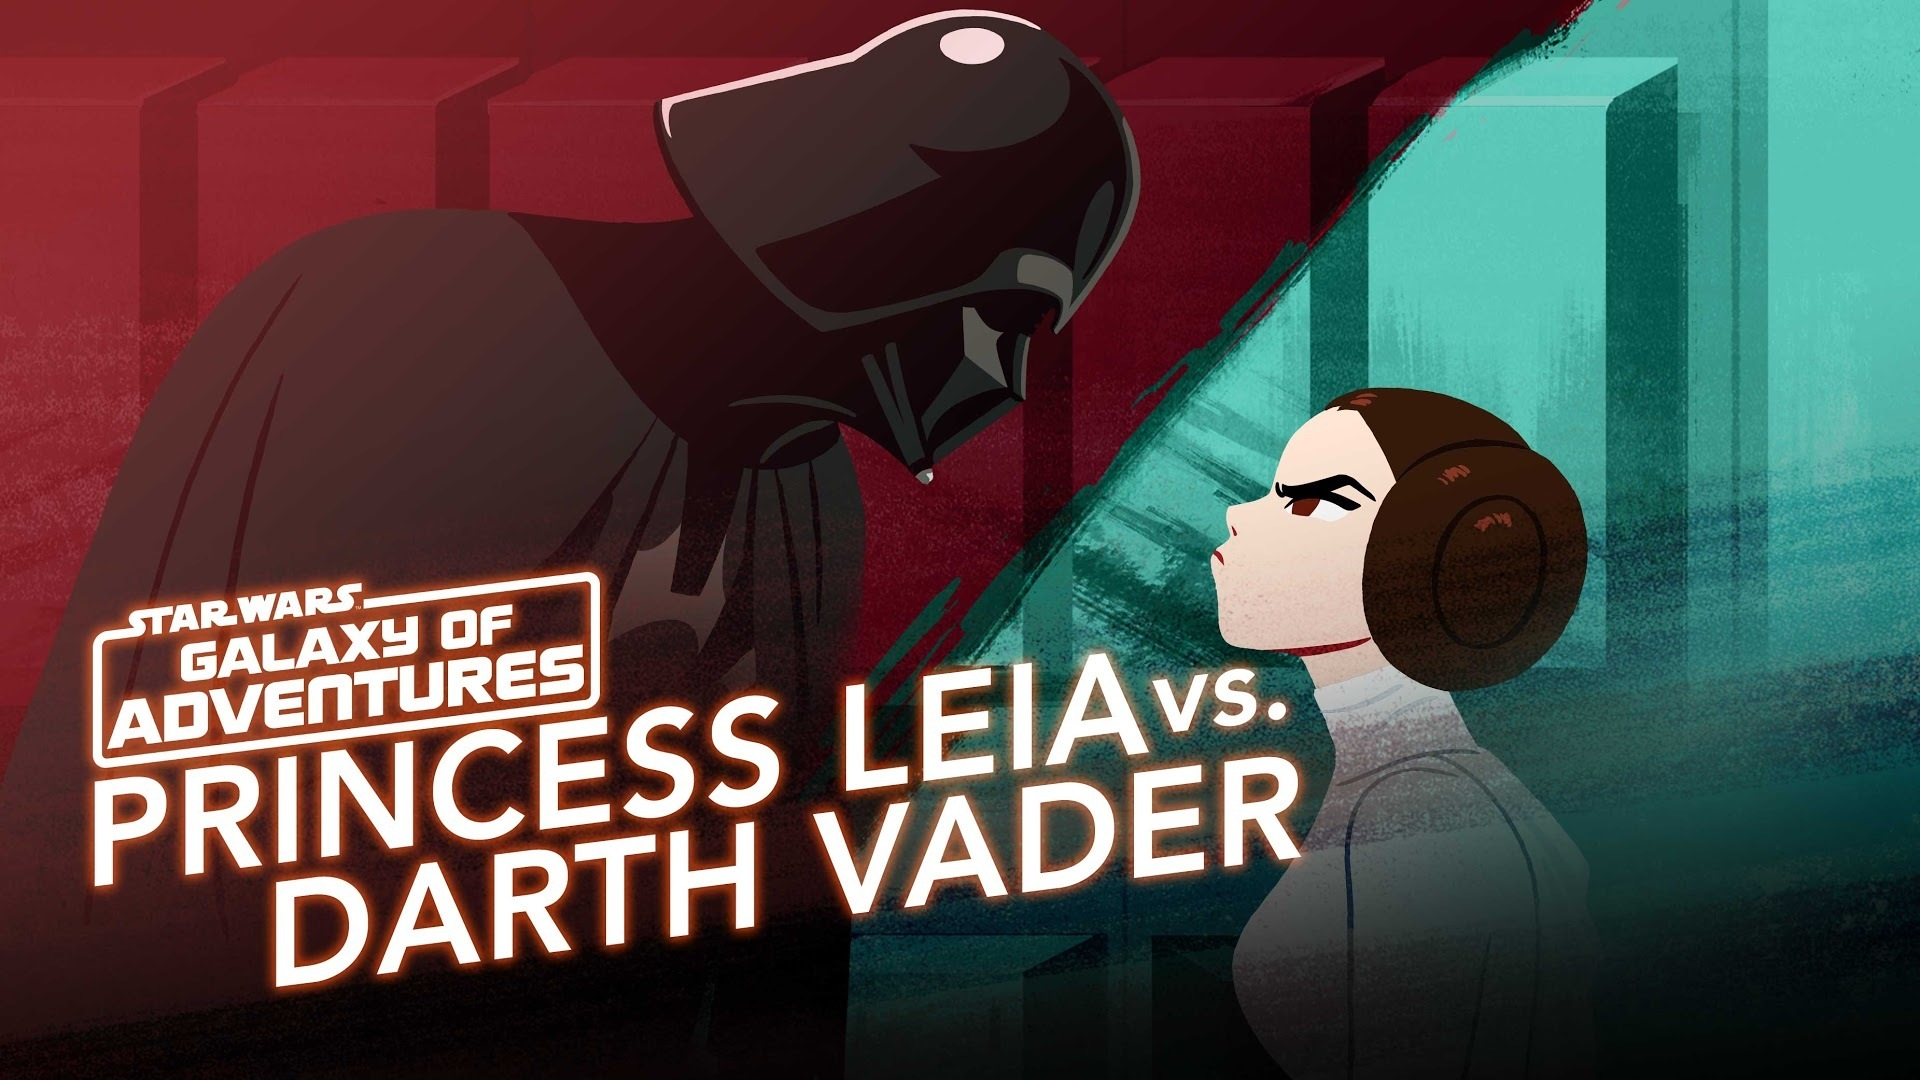 Princess Leia vs. Darth Vader - A Fearless Leader | Star Wars Galaxy of Adventures